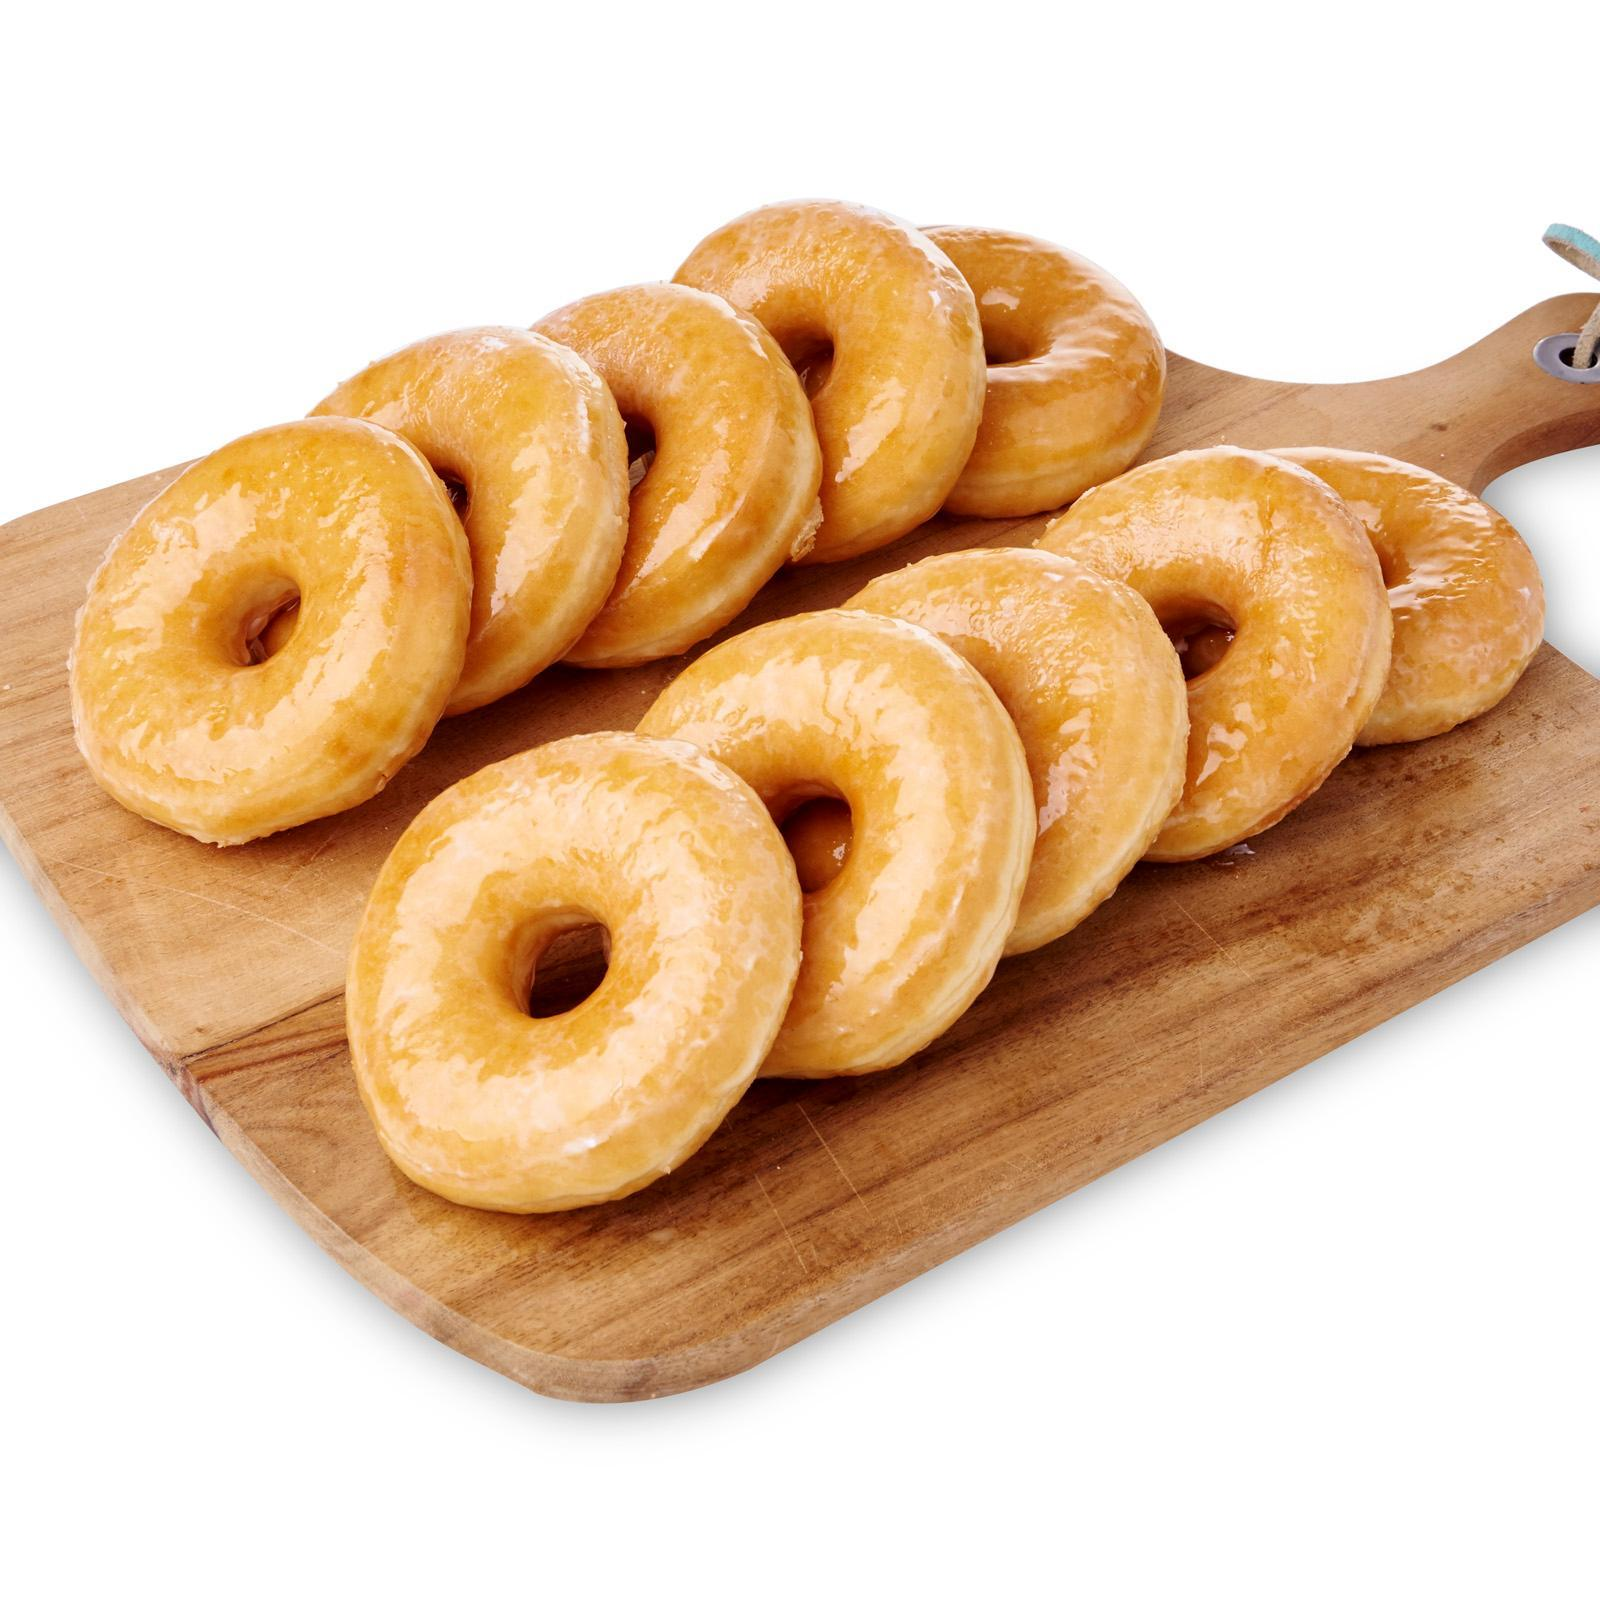 Bakehouse Double Glazed Original Doughnut - Frozen - Case By Redmart.